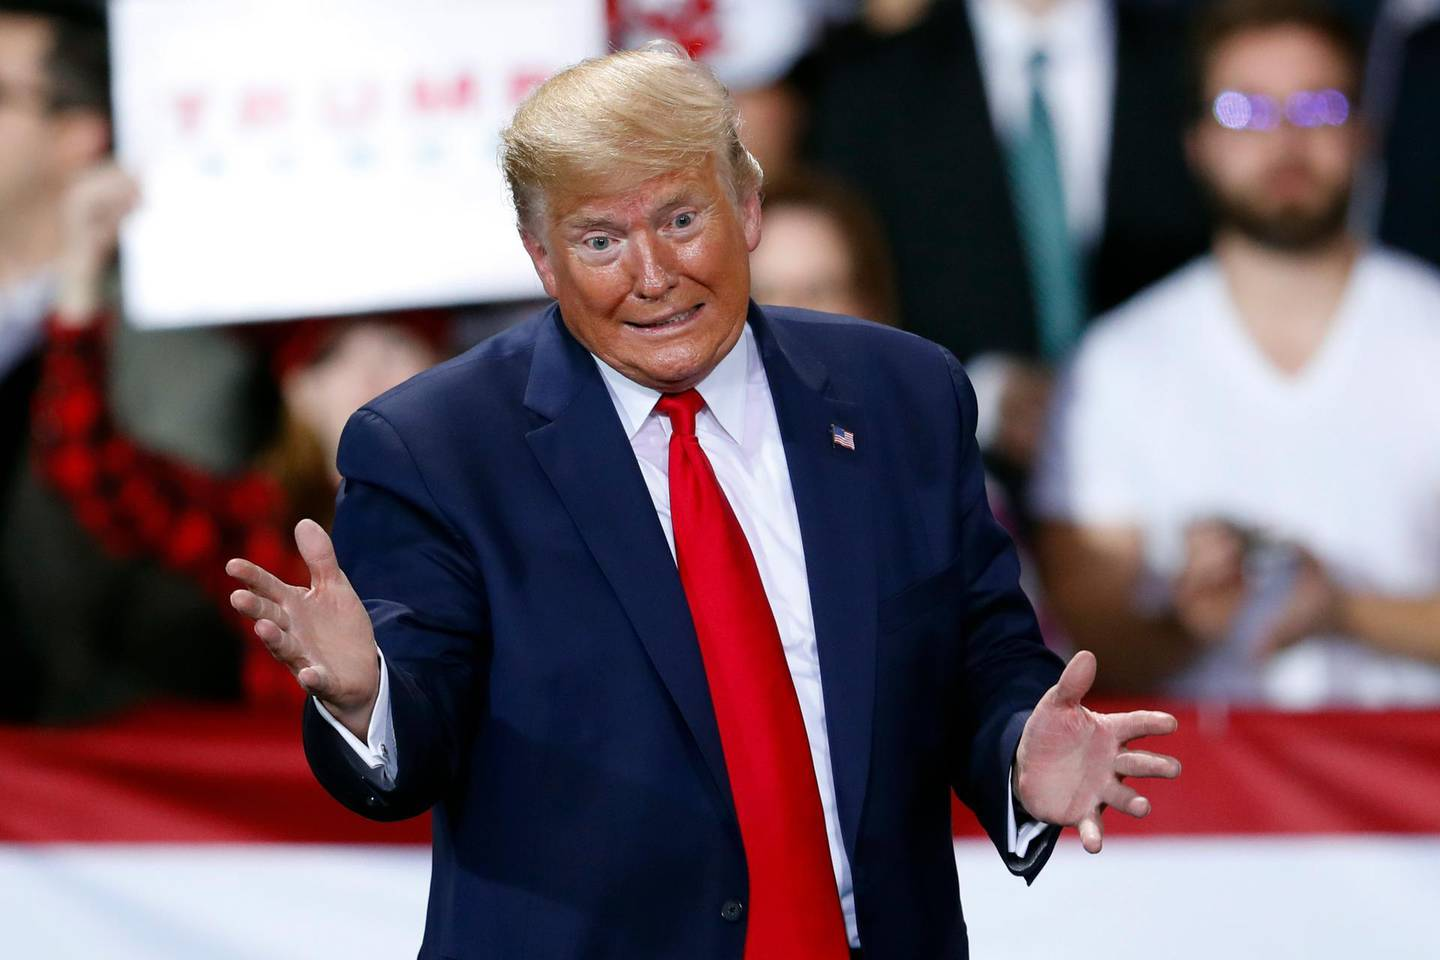 """In this Dec. 18, 2019, photo, President Donald Trump speaks at a campaign rally in Battle Creek, Mich. Using stark """"Us versus Them"""" language, Trump and his campaign are trying to frame impeachment not as judgment on his conduct but as a culture war referendum on him and his supporters, aiming to motivate his base heading into an election year (AP Photo/Paul Sancya)"""